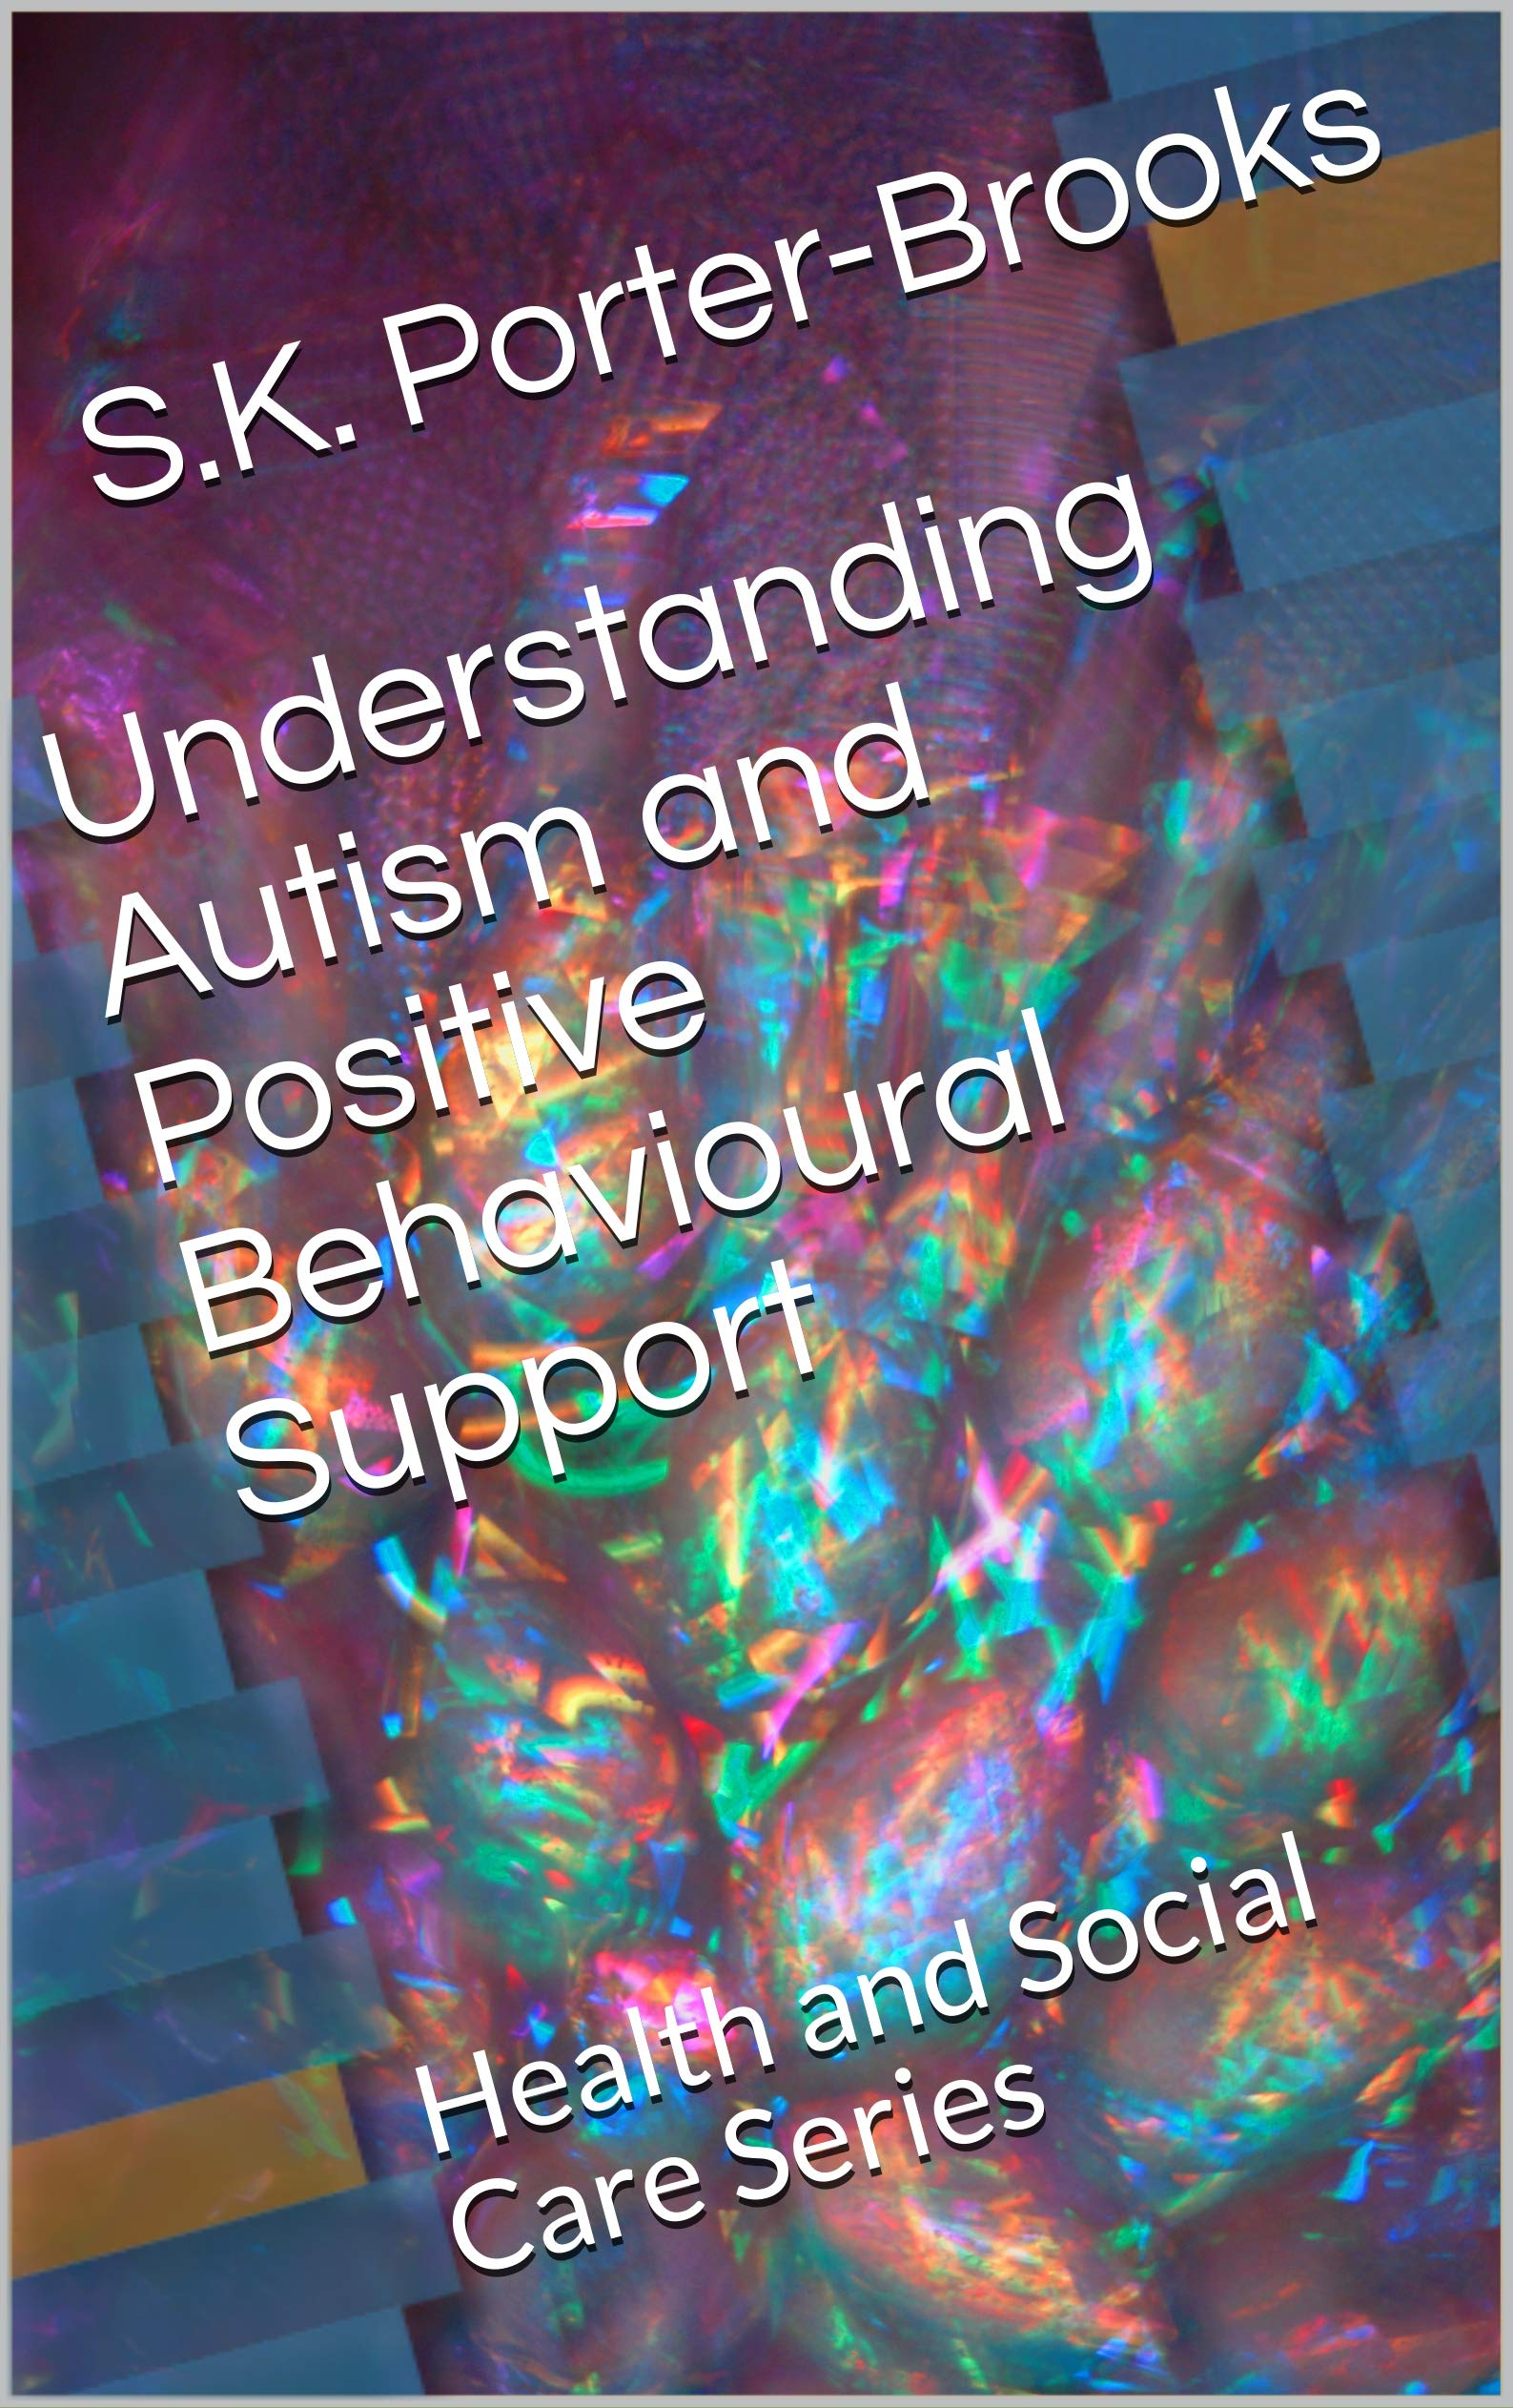 Understanding Autism And Positive Behavioural Support  Health And Social Care Series  English Edition